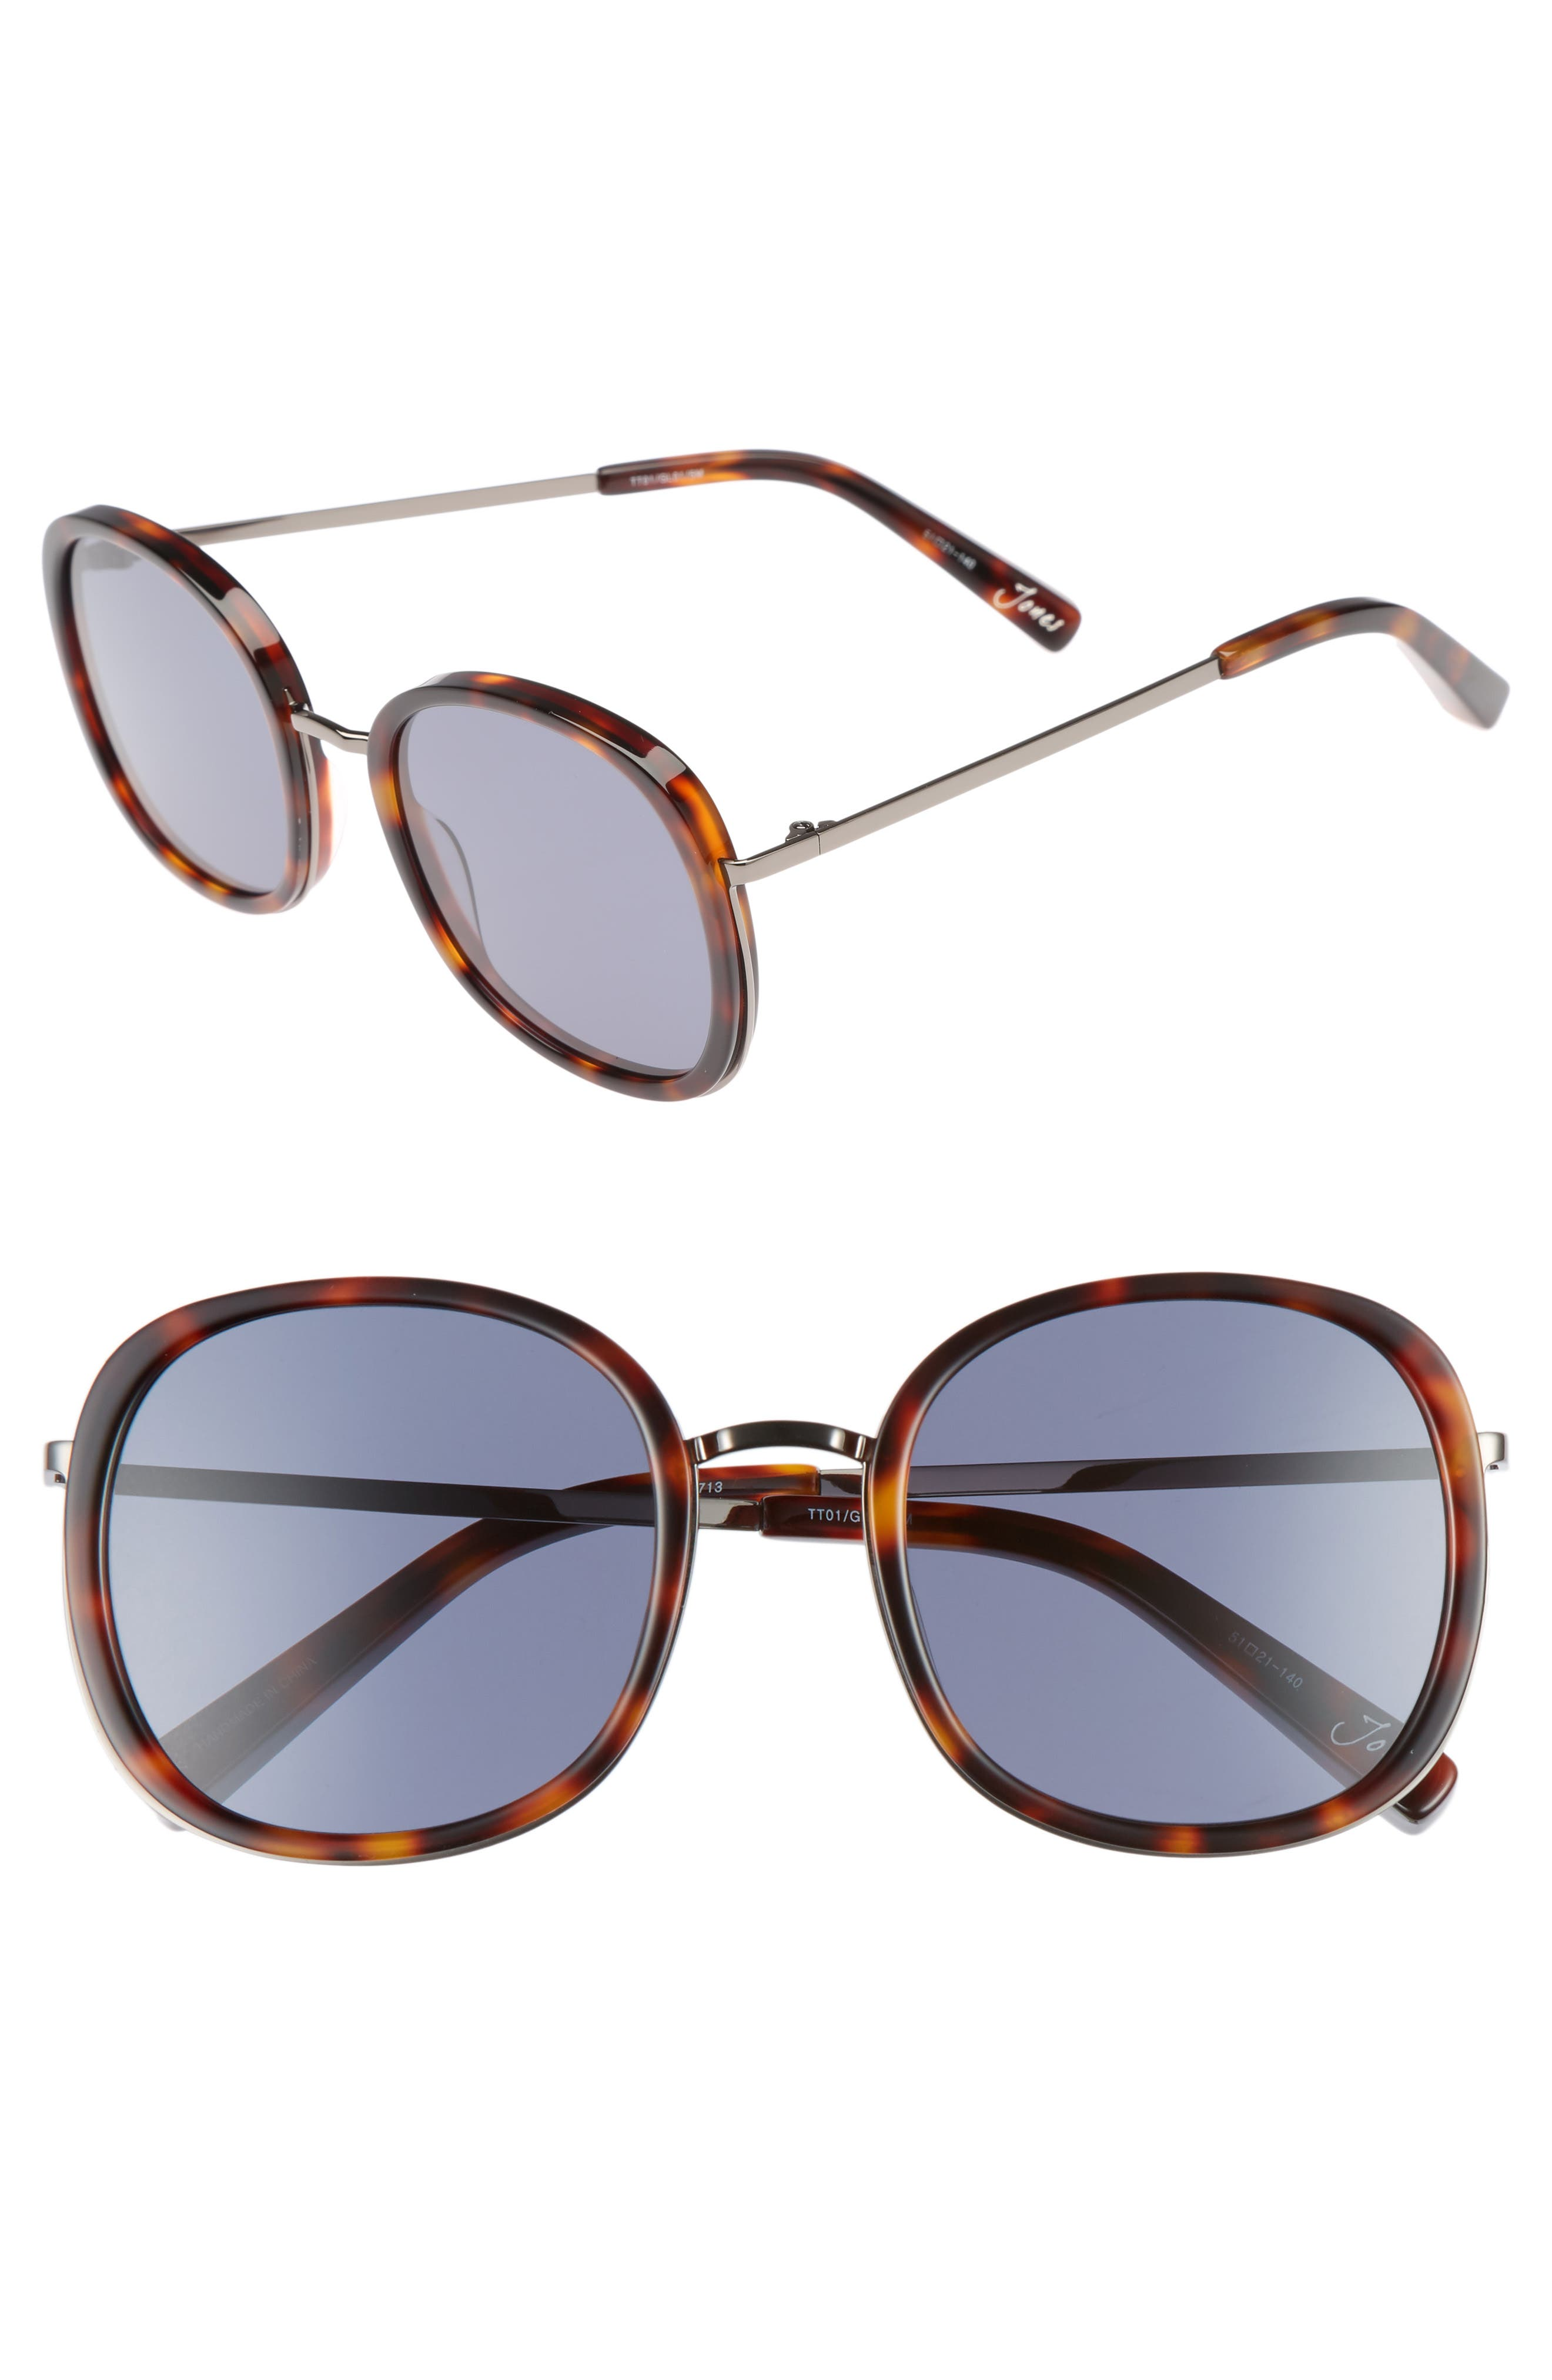 Elizabeth and James Jones 51mm Round Sunglasses